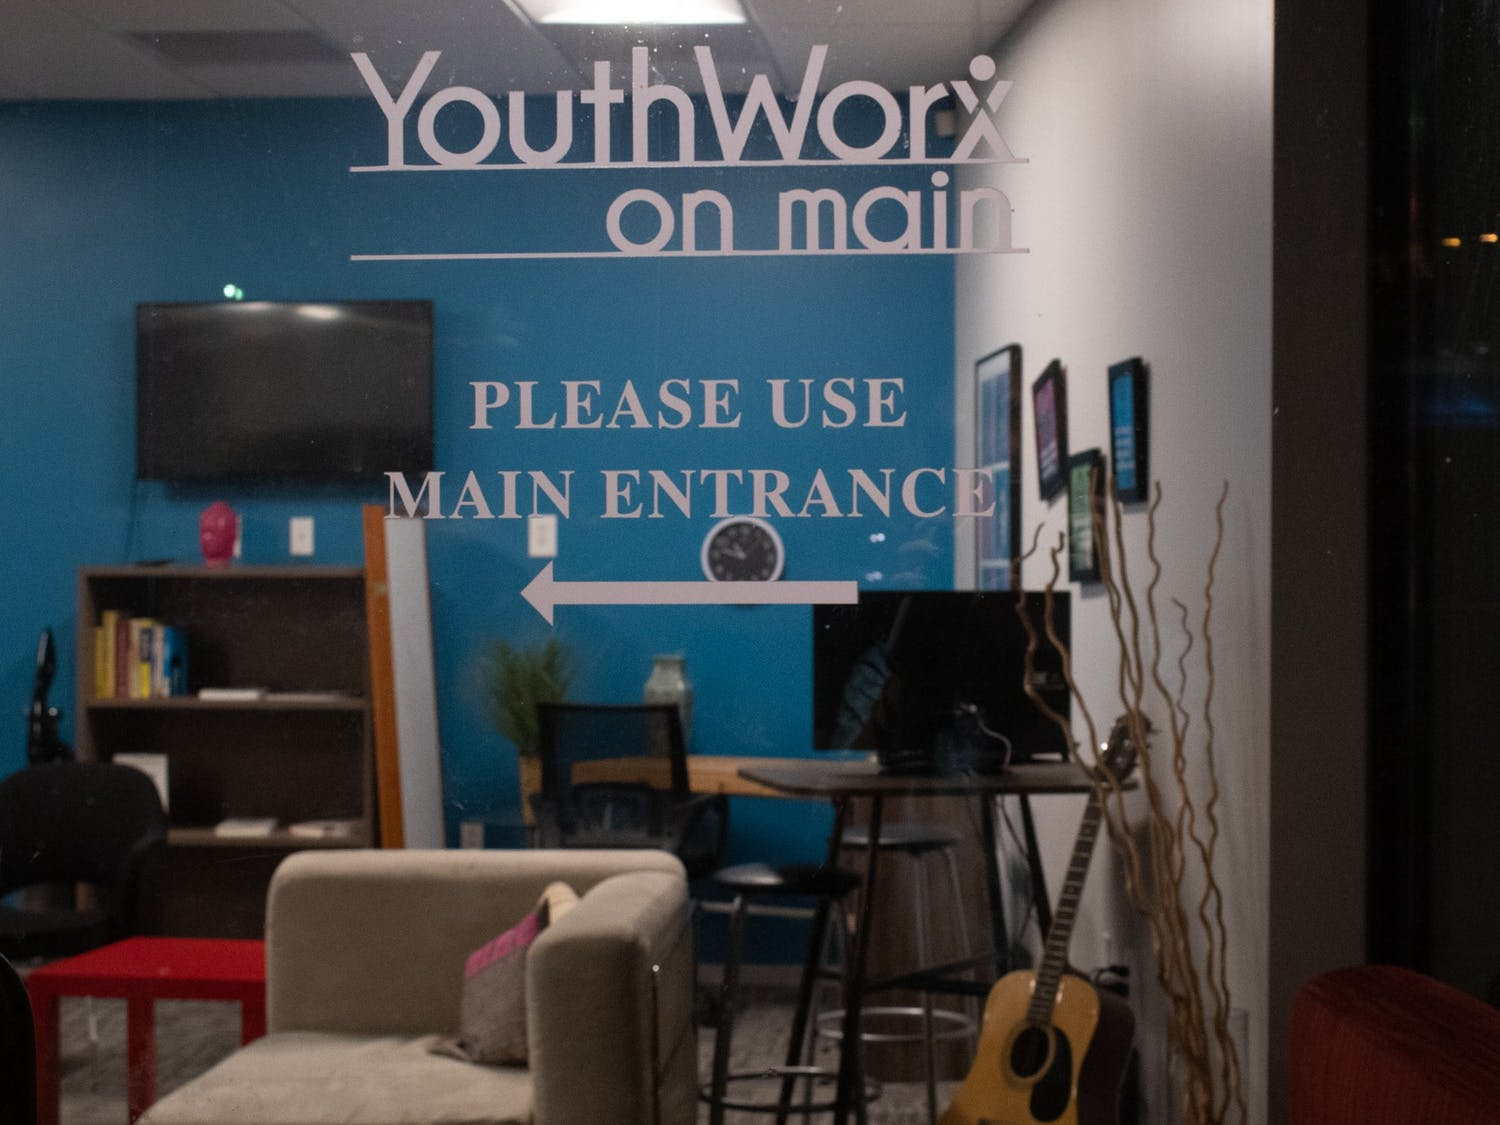 The Youth Worx building, which contains the Musical Empowerment program, is located in Carrboro, NC.